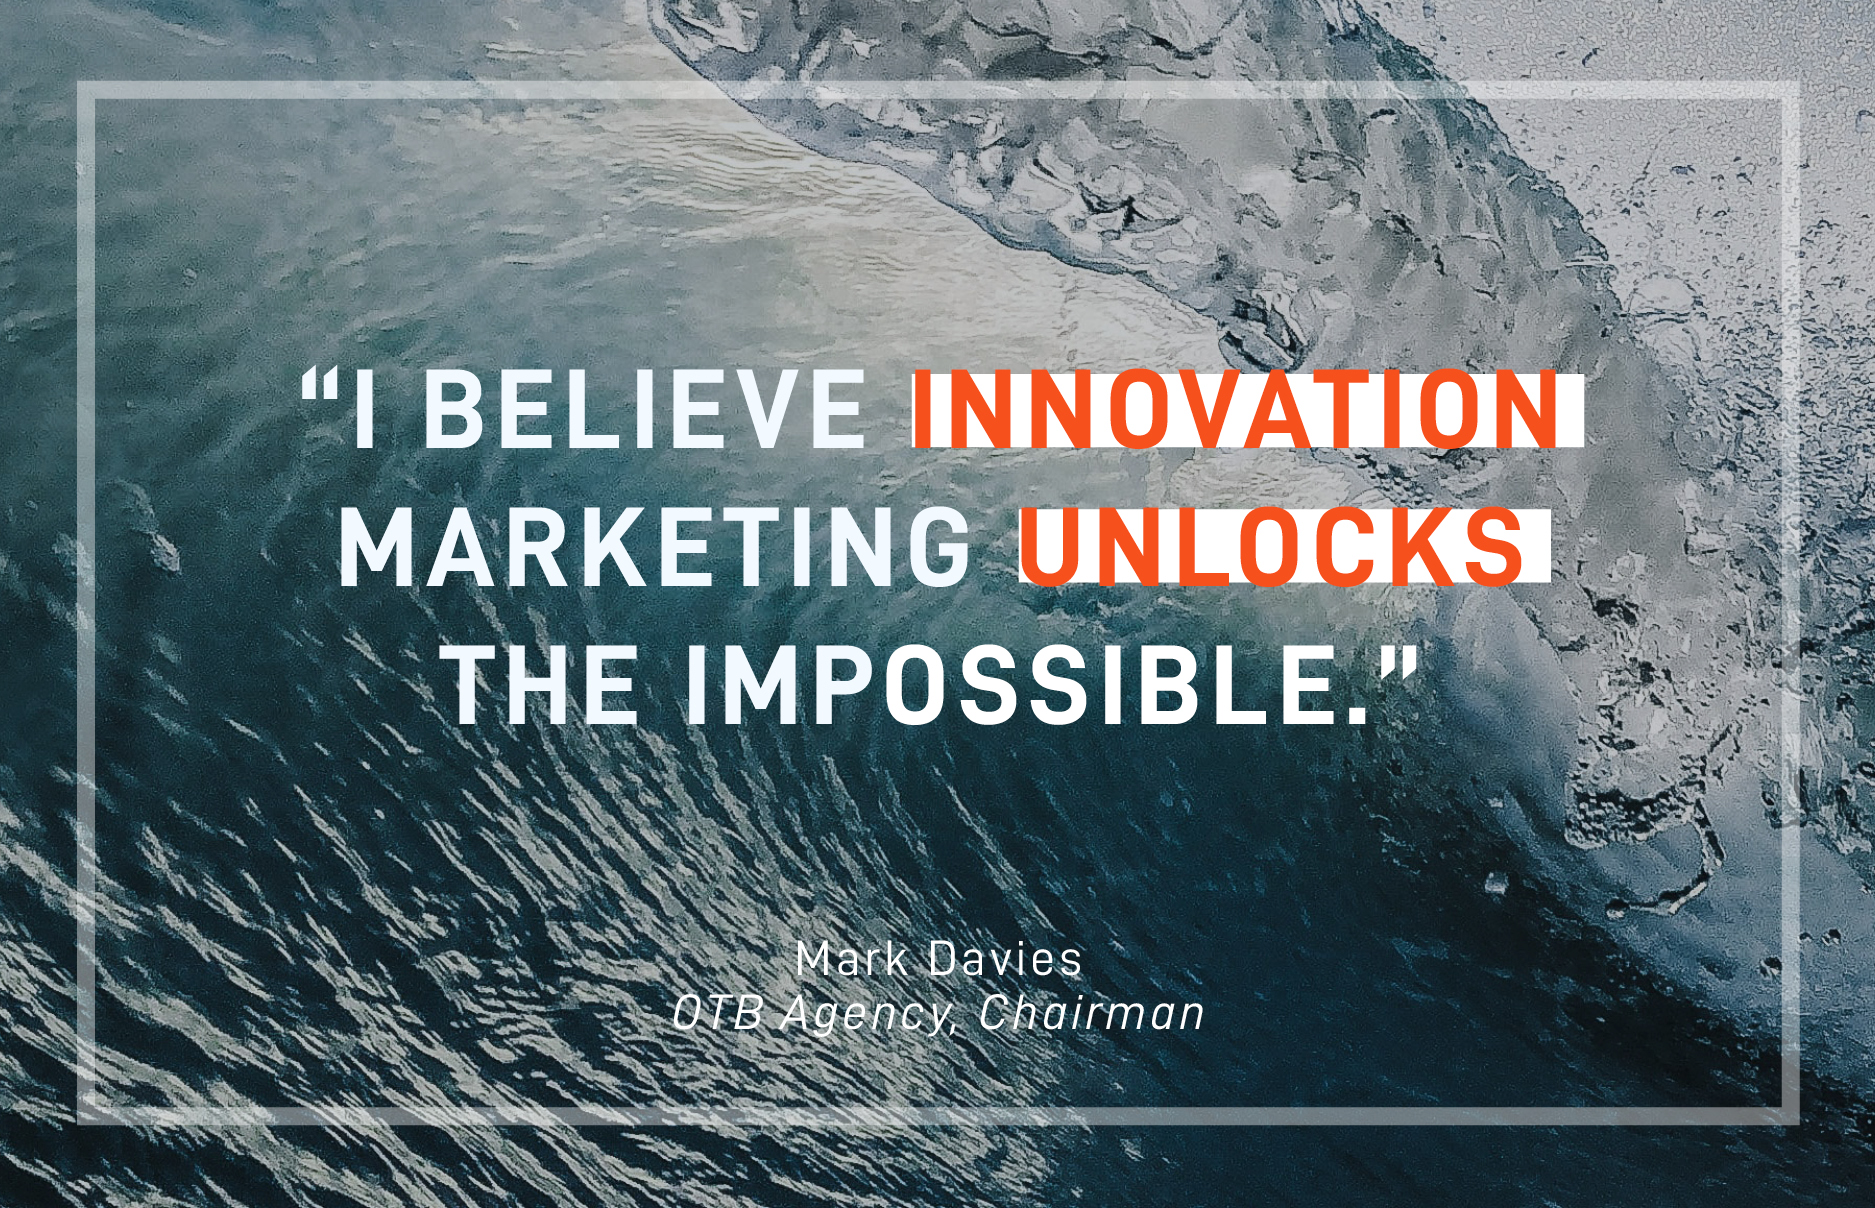 Is 'Innovation Marketing' uncontested market space?